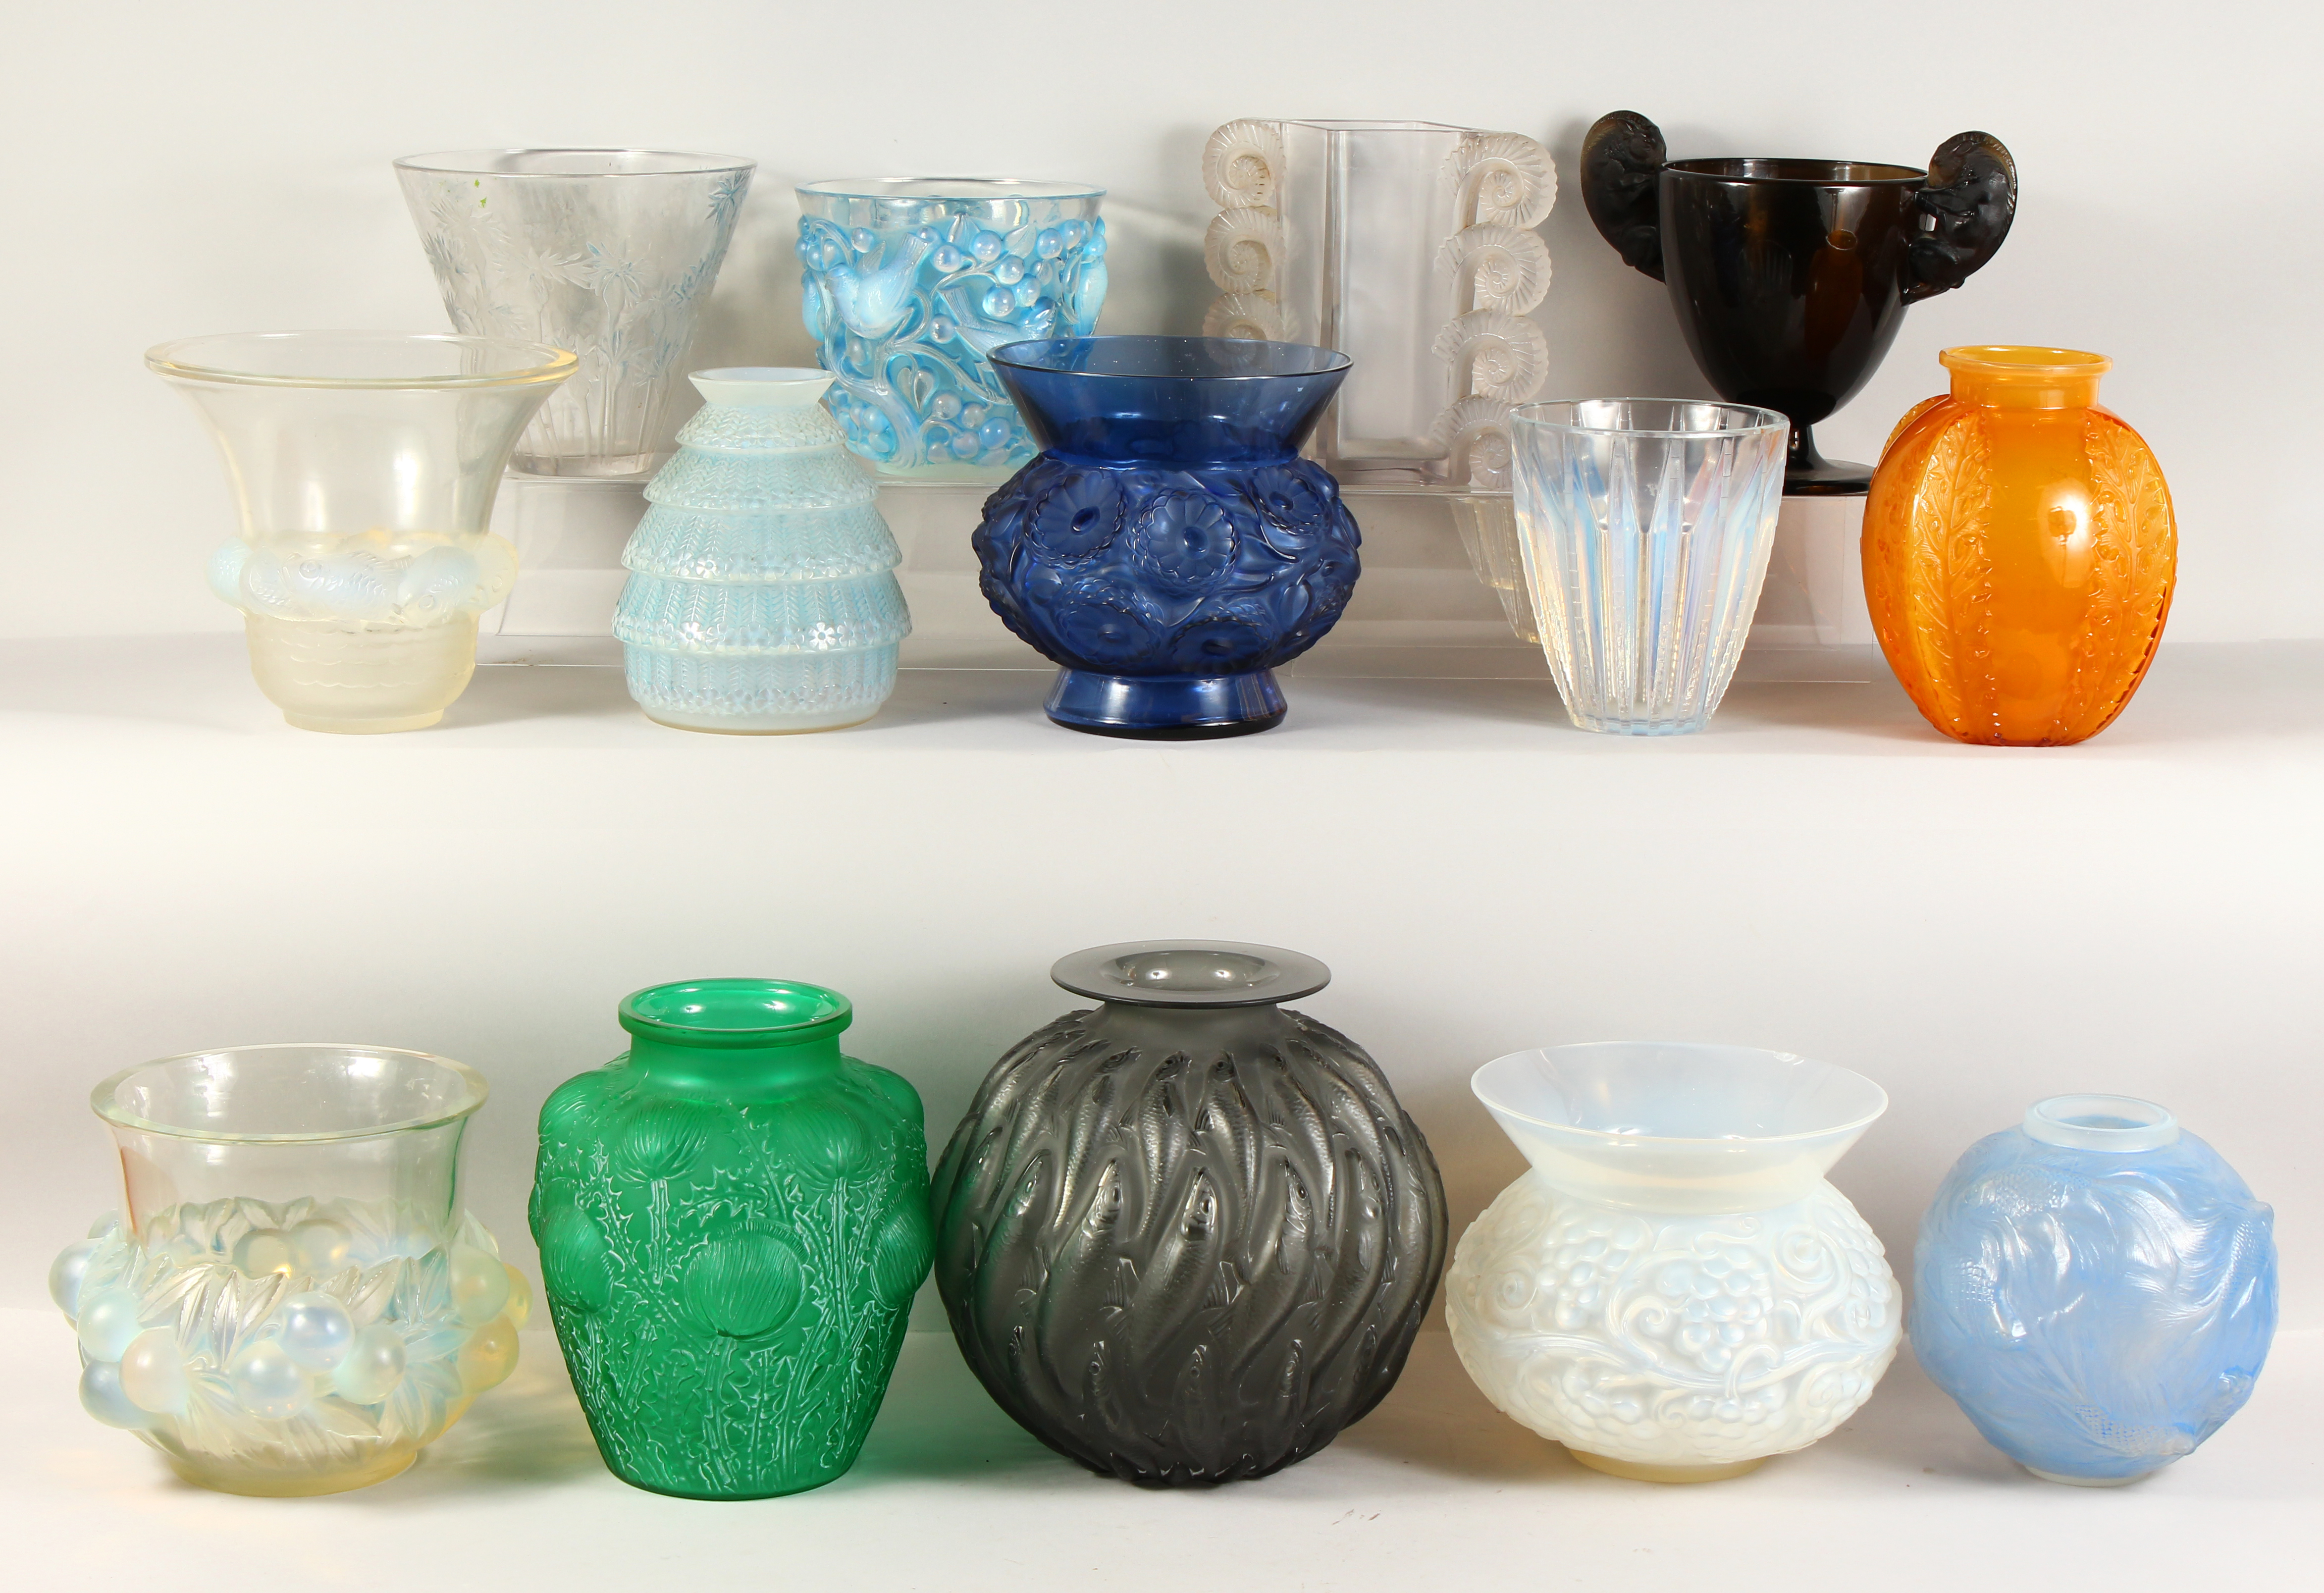 A single-owner collection of Lalique glass vases. /Auctioneers and valuers